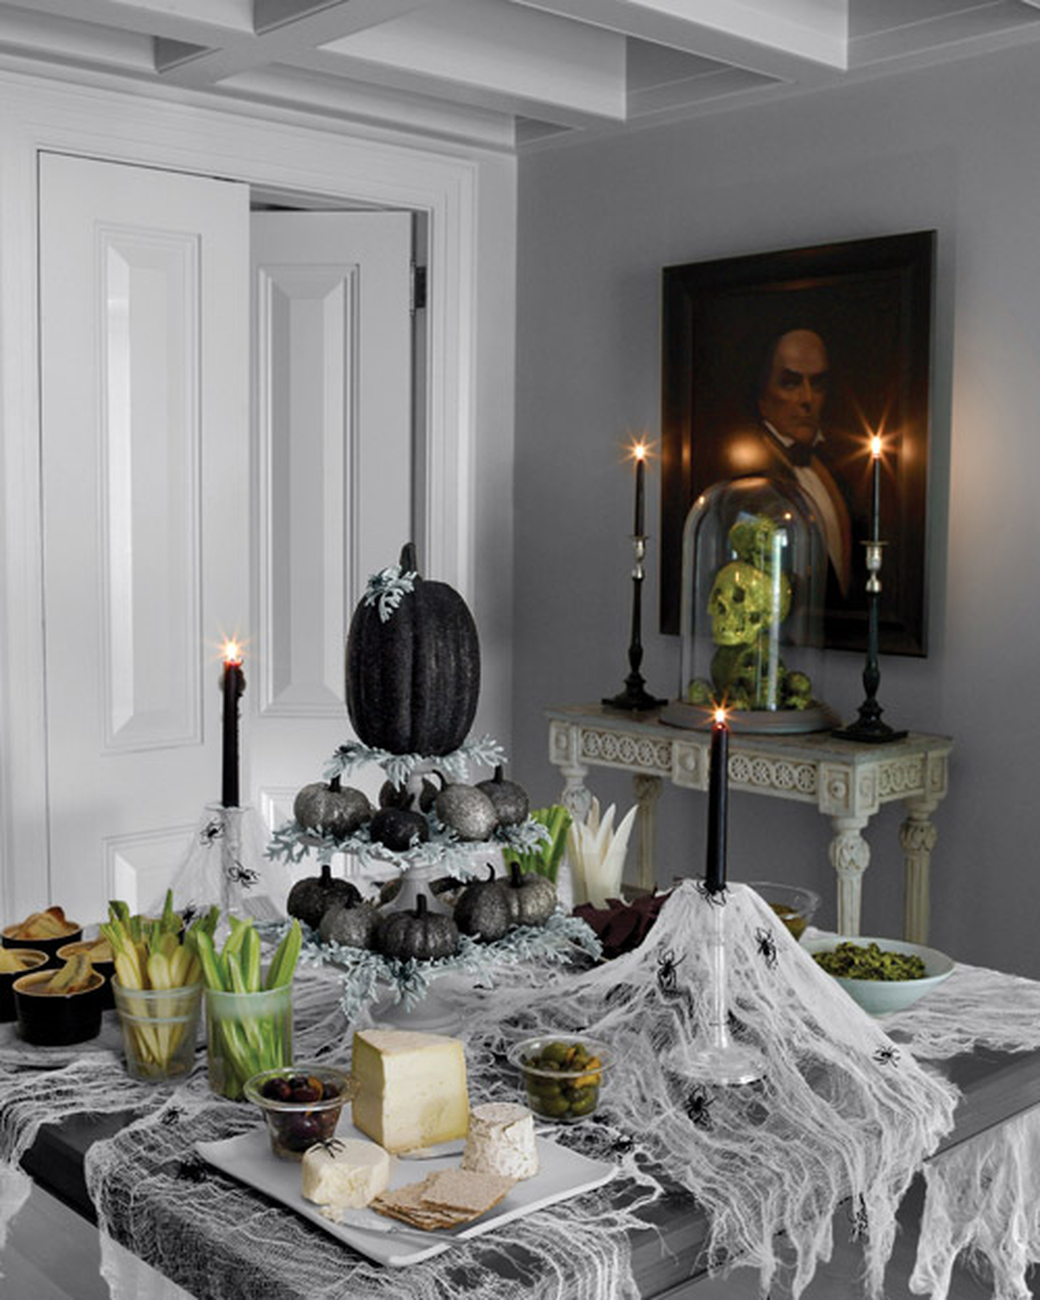 The Best Dining Tables Dcor For Halloween